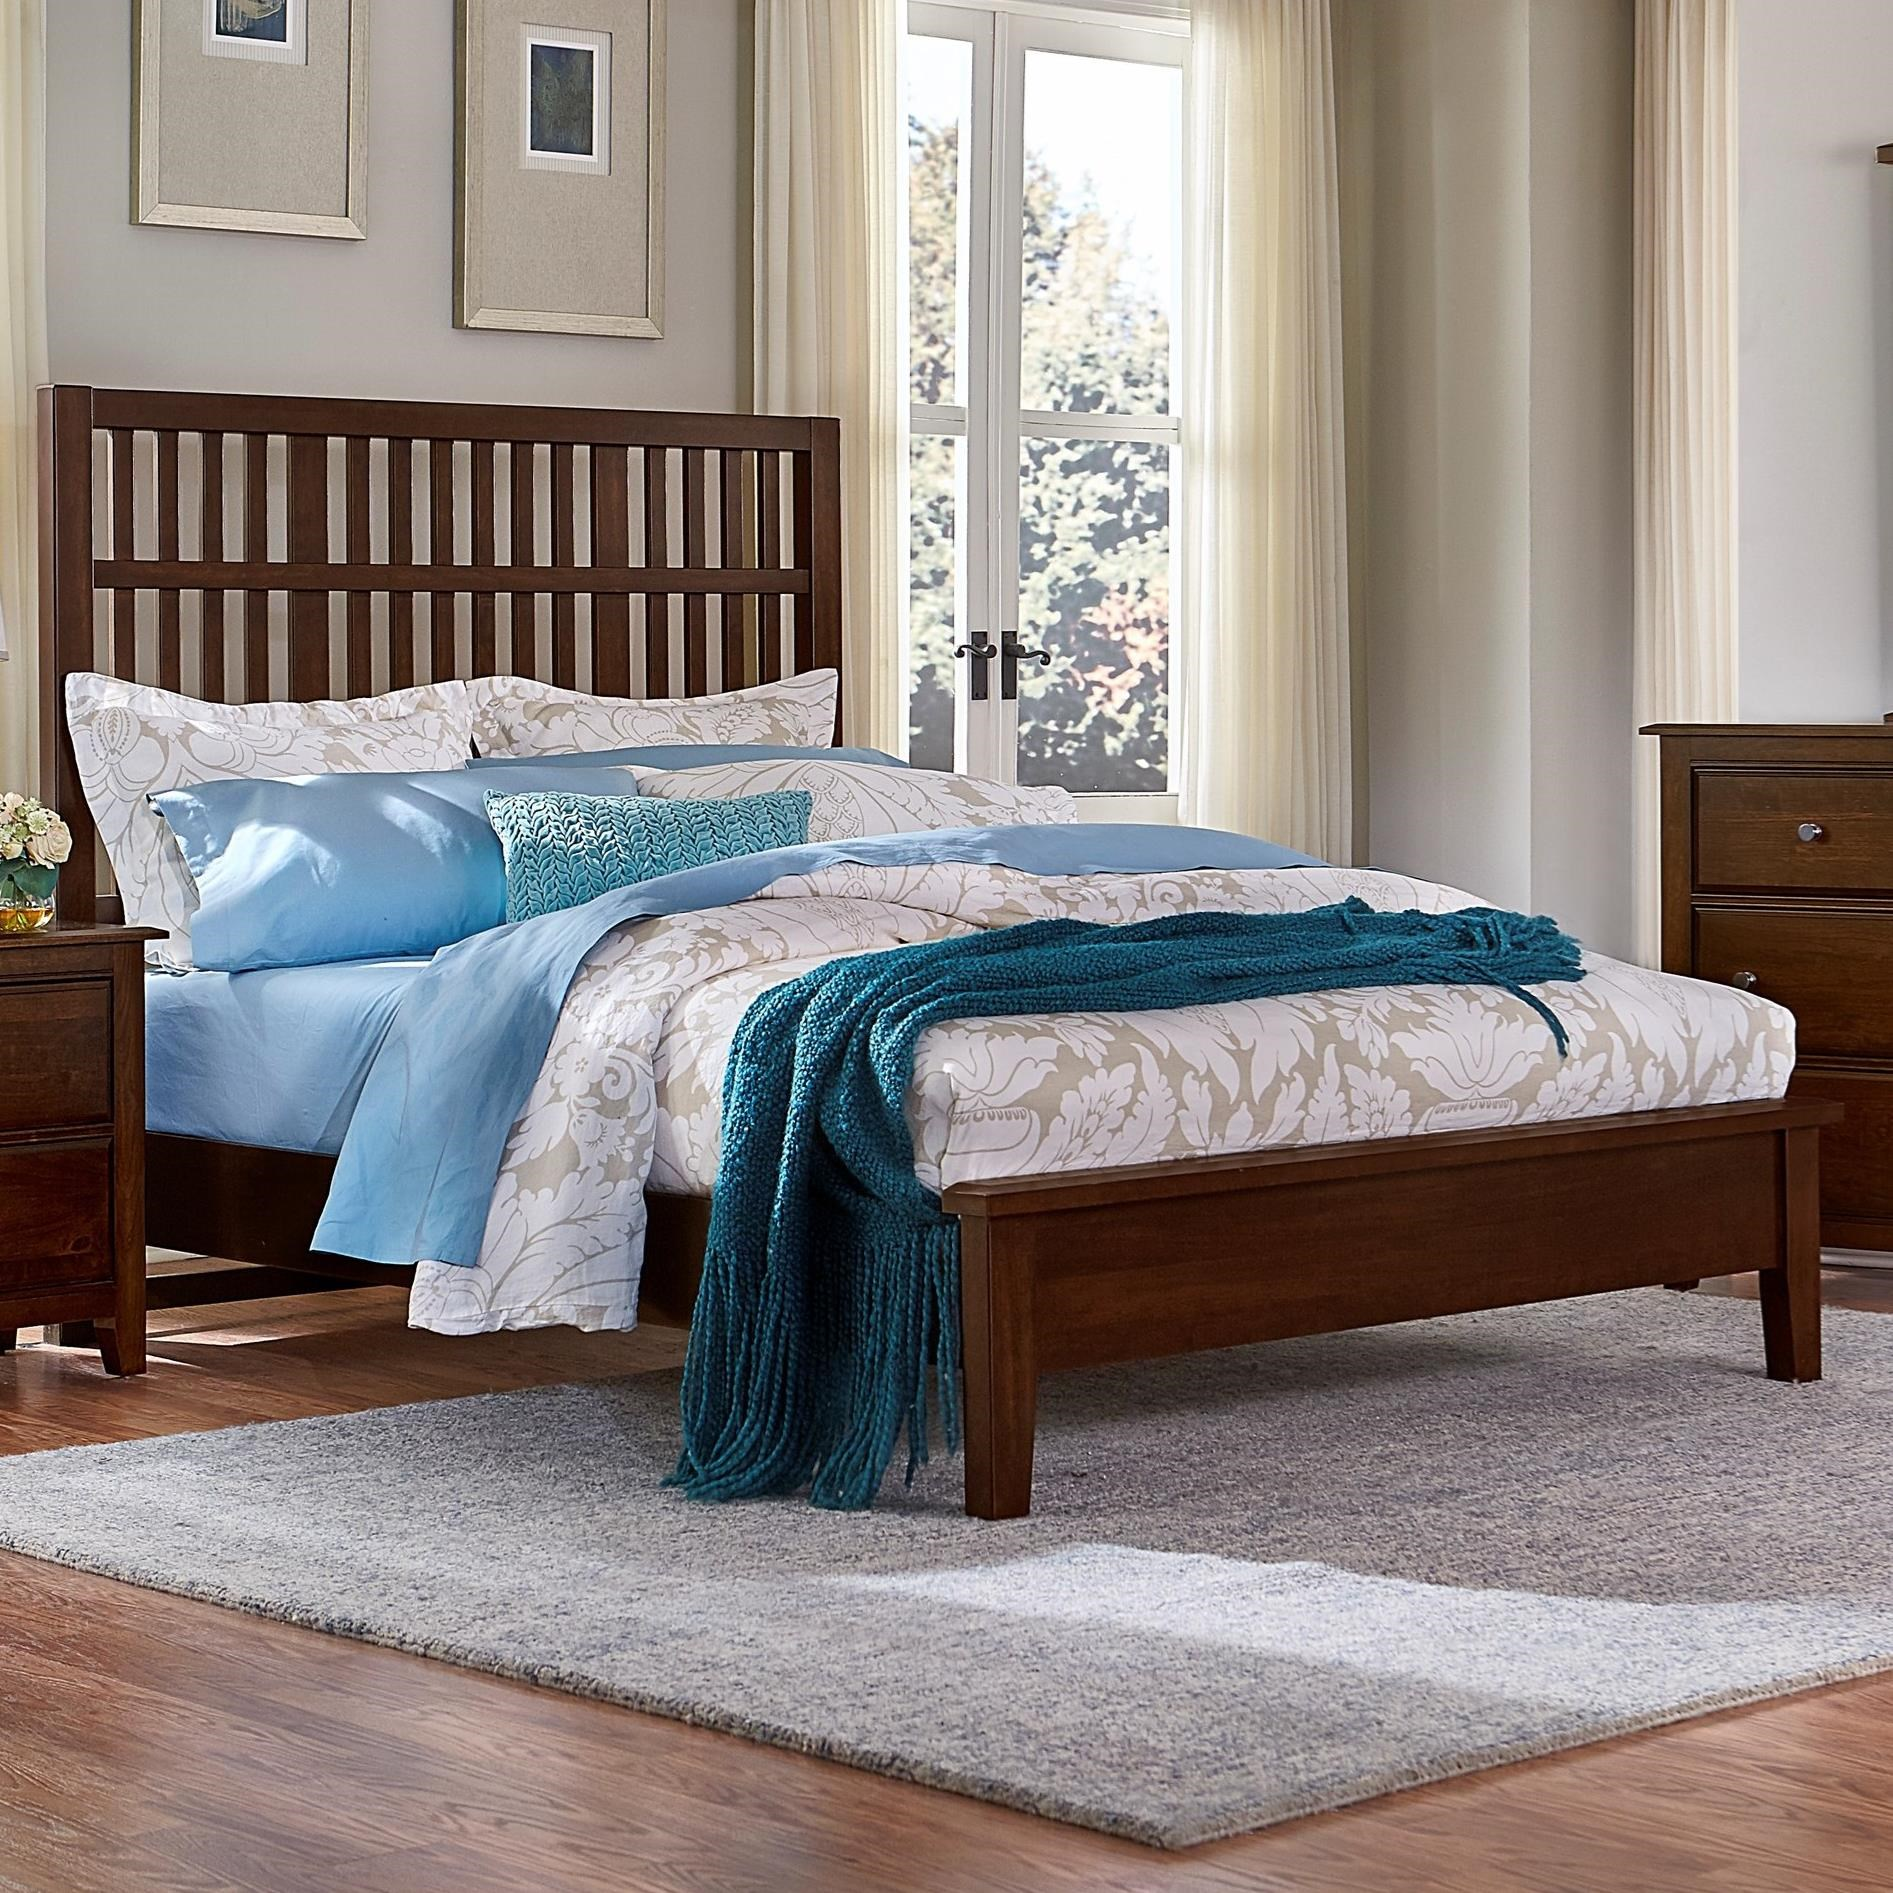 Artisan Choices King Craftsman Slat Bed w/ Low Ftbd by Artisan & Post at Rooms and Rest